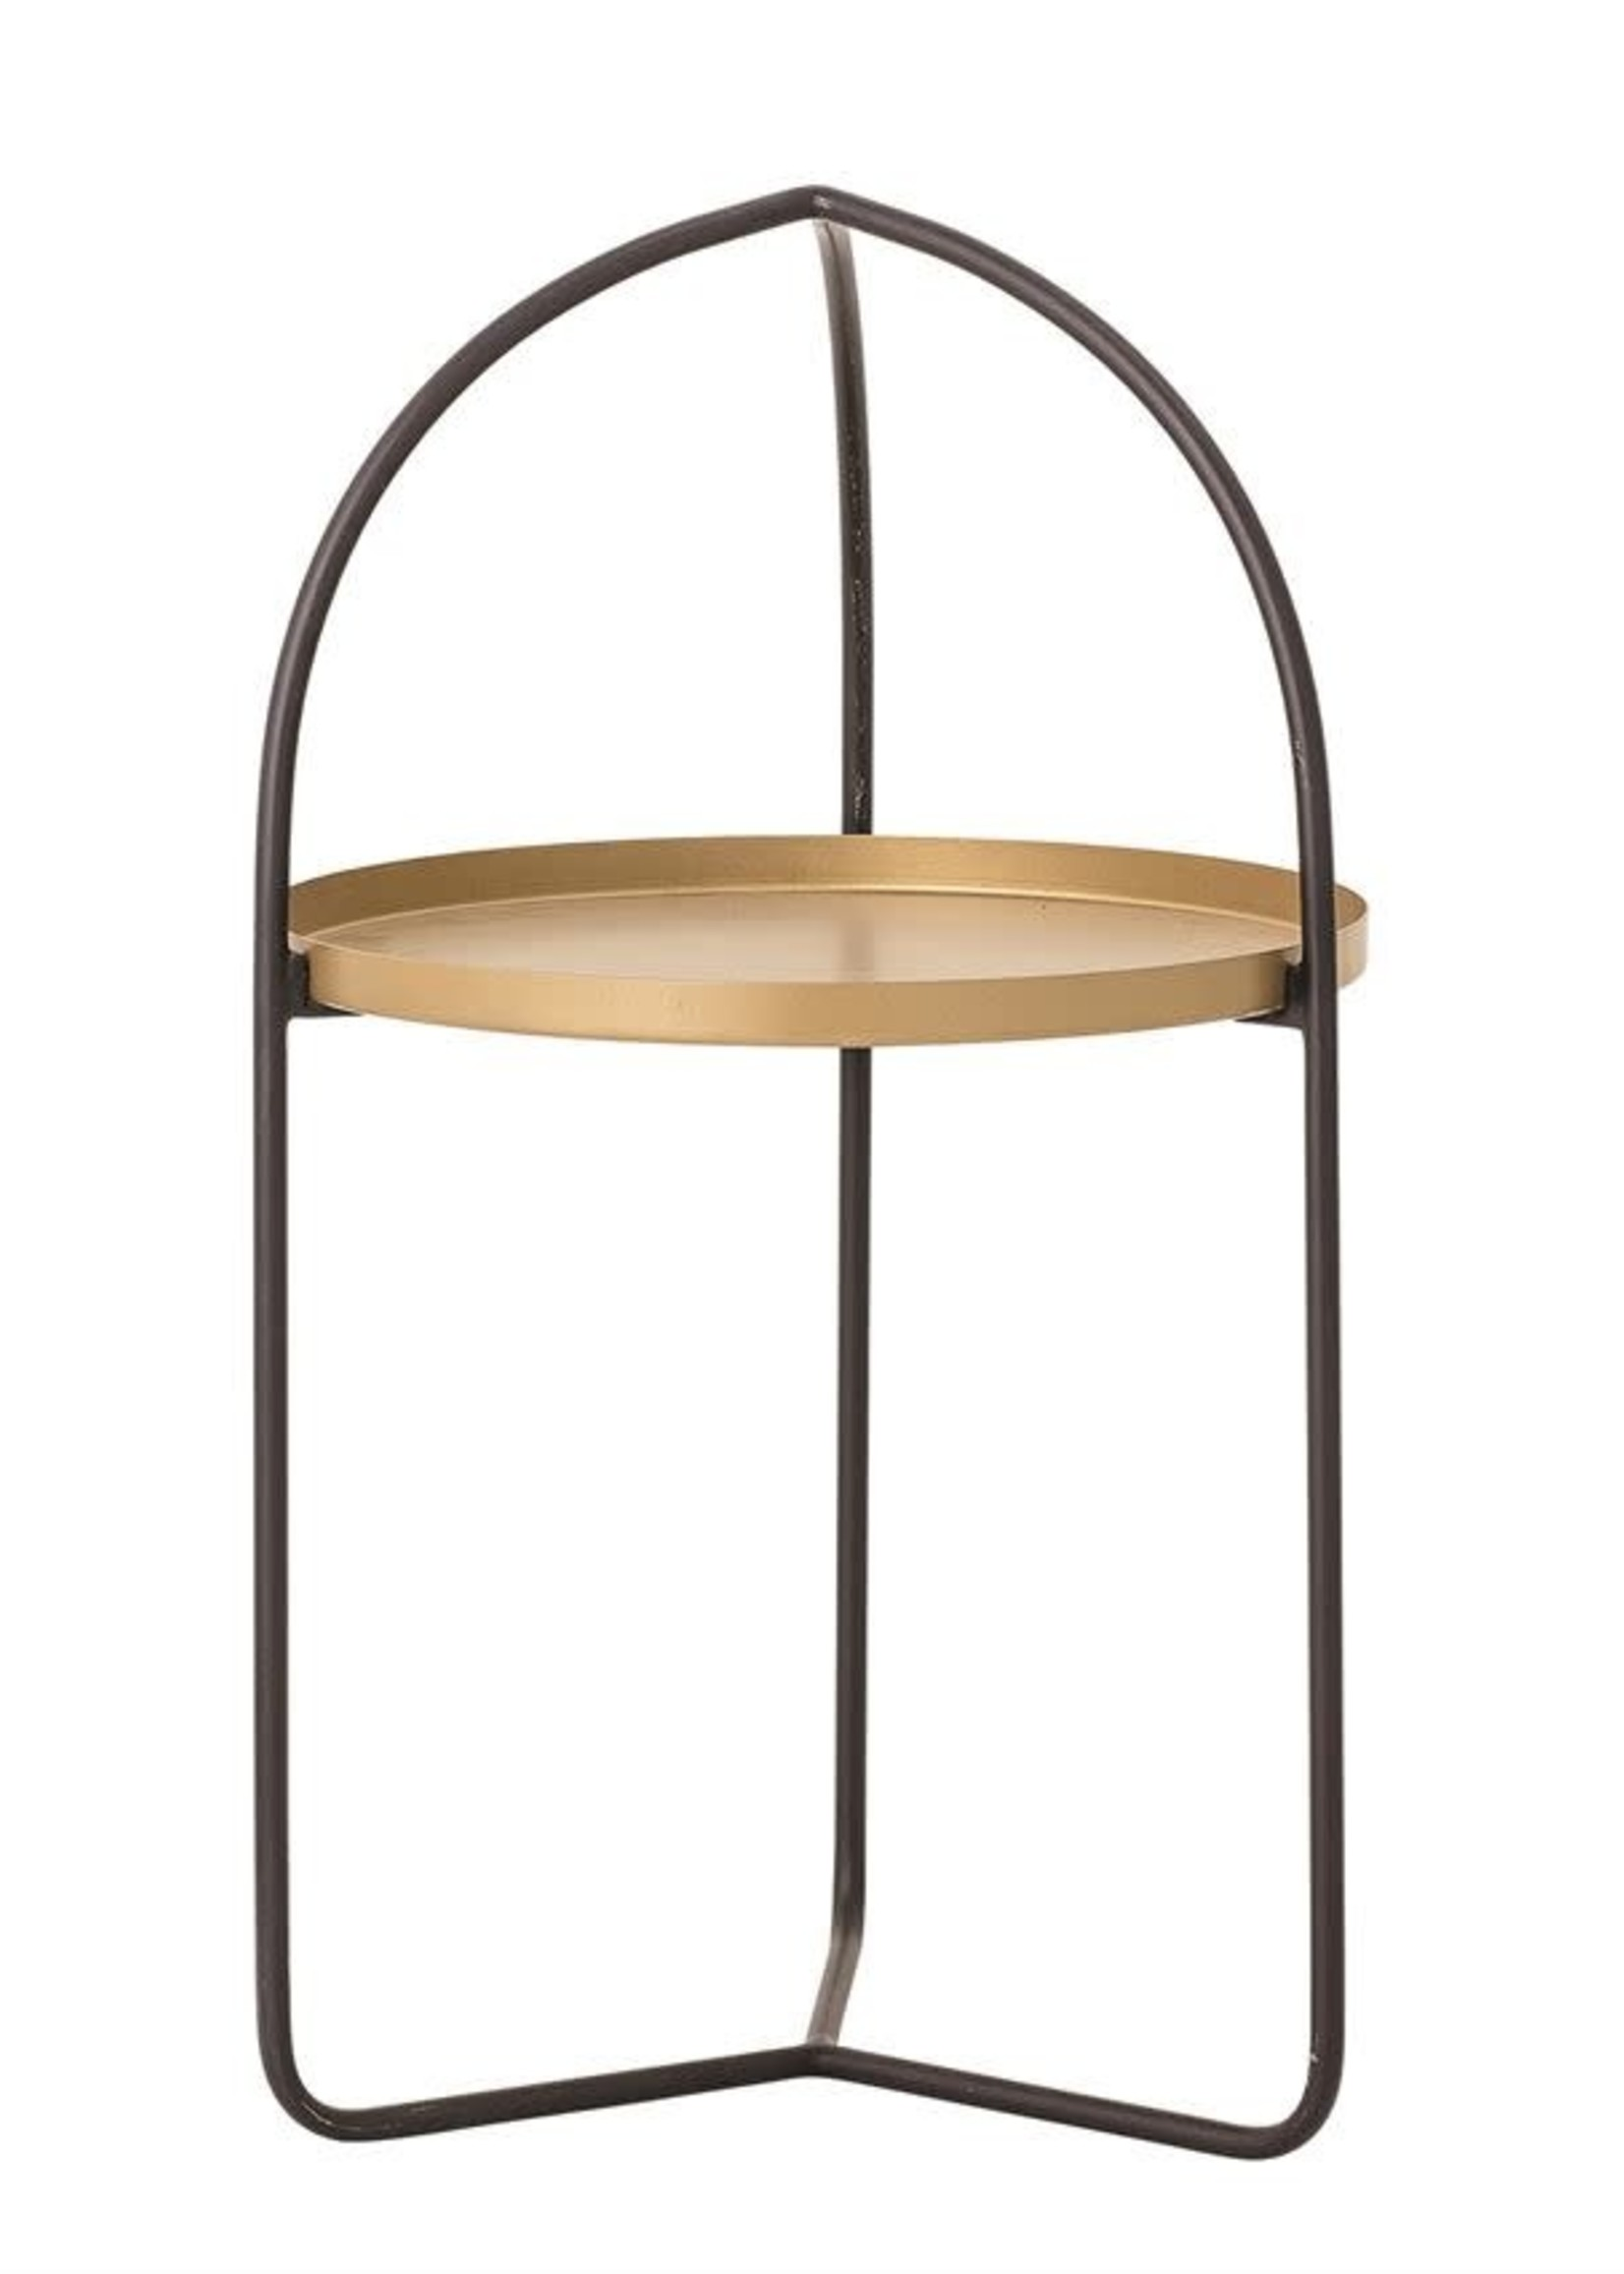 Metal Tray in Stand, Black & Gold Finish